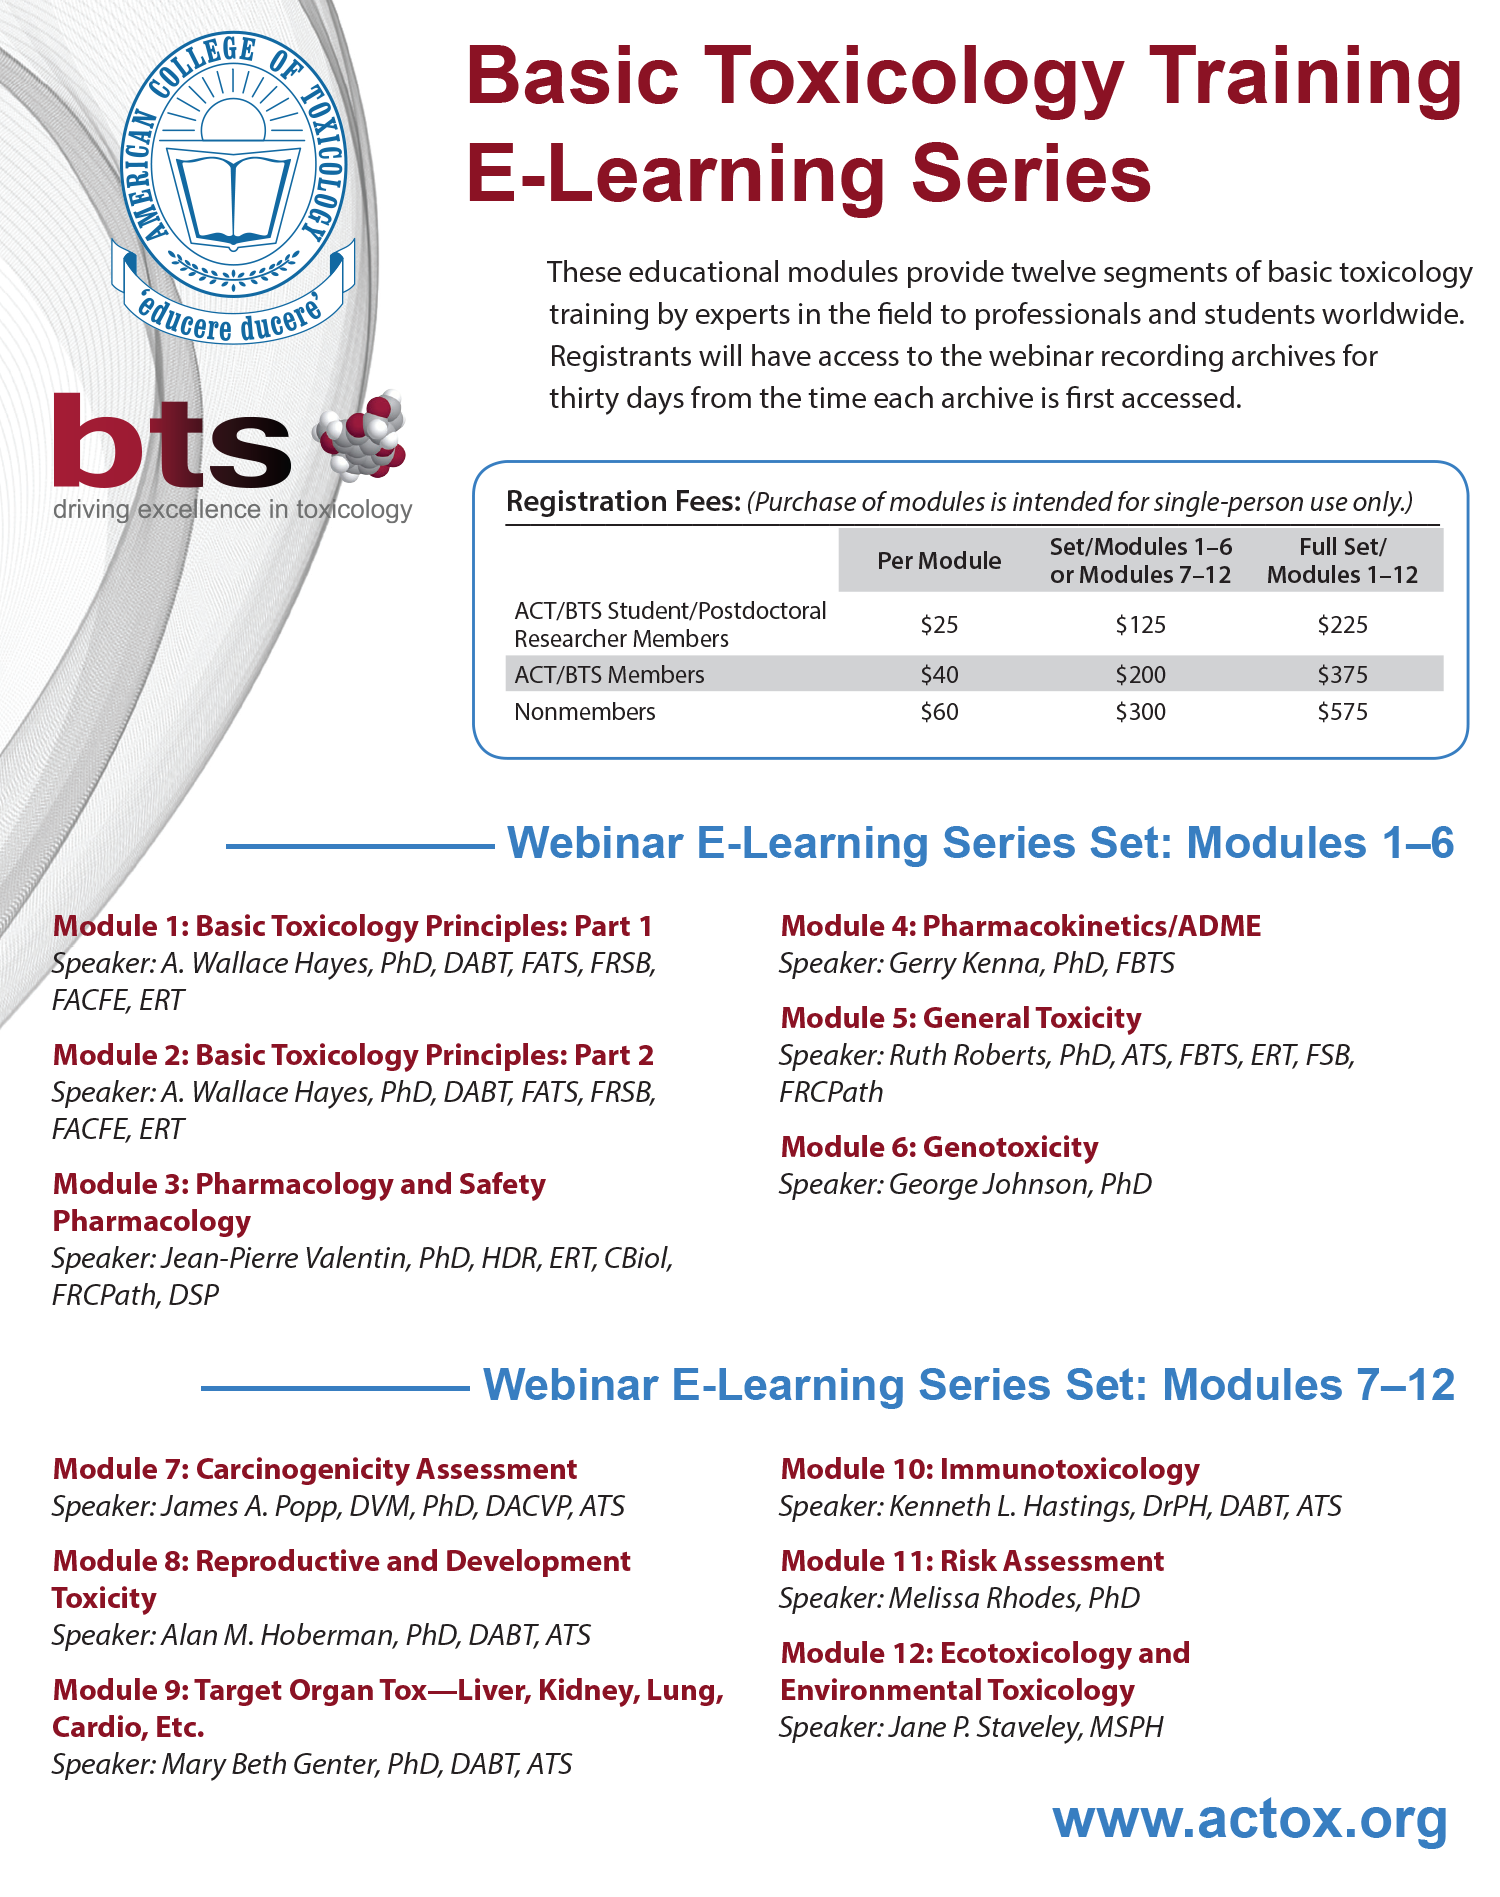 Basic Toxicology Training E-Learning Series